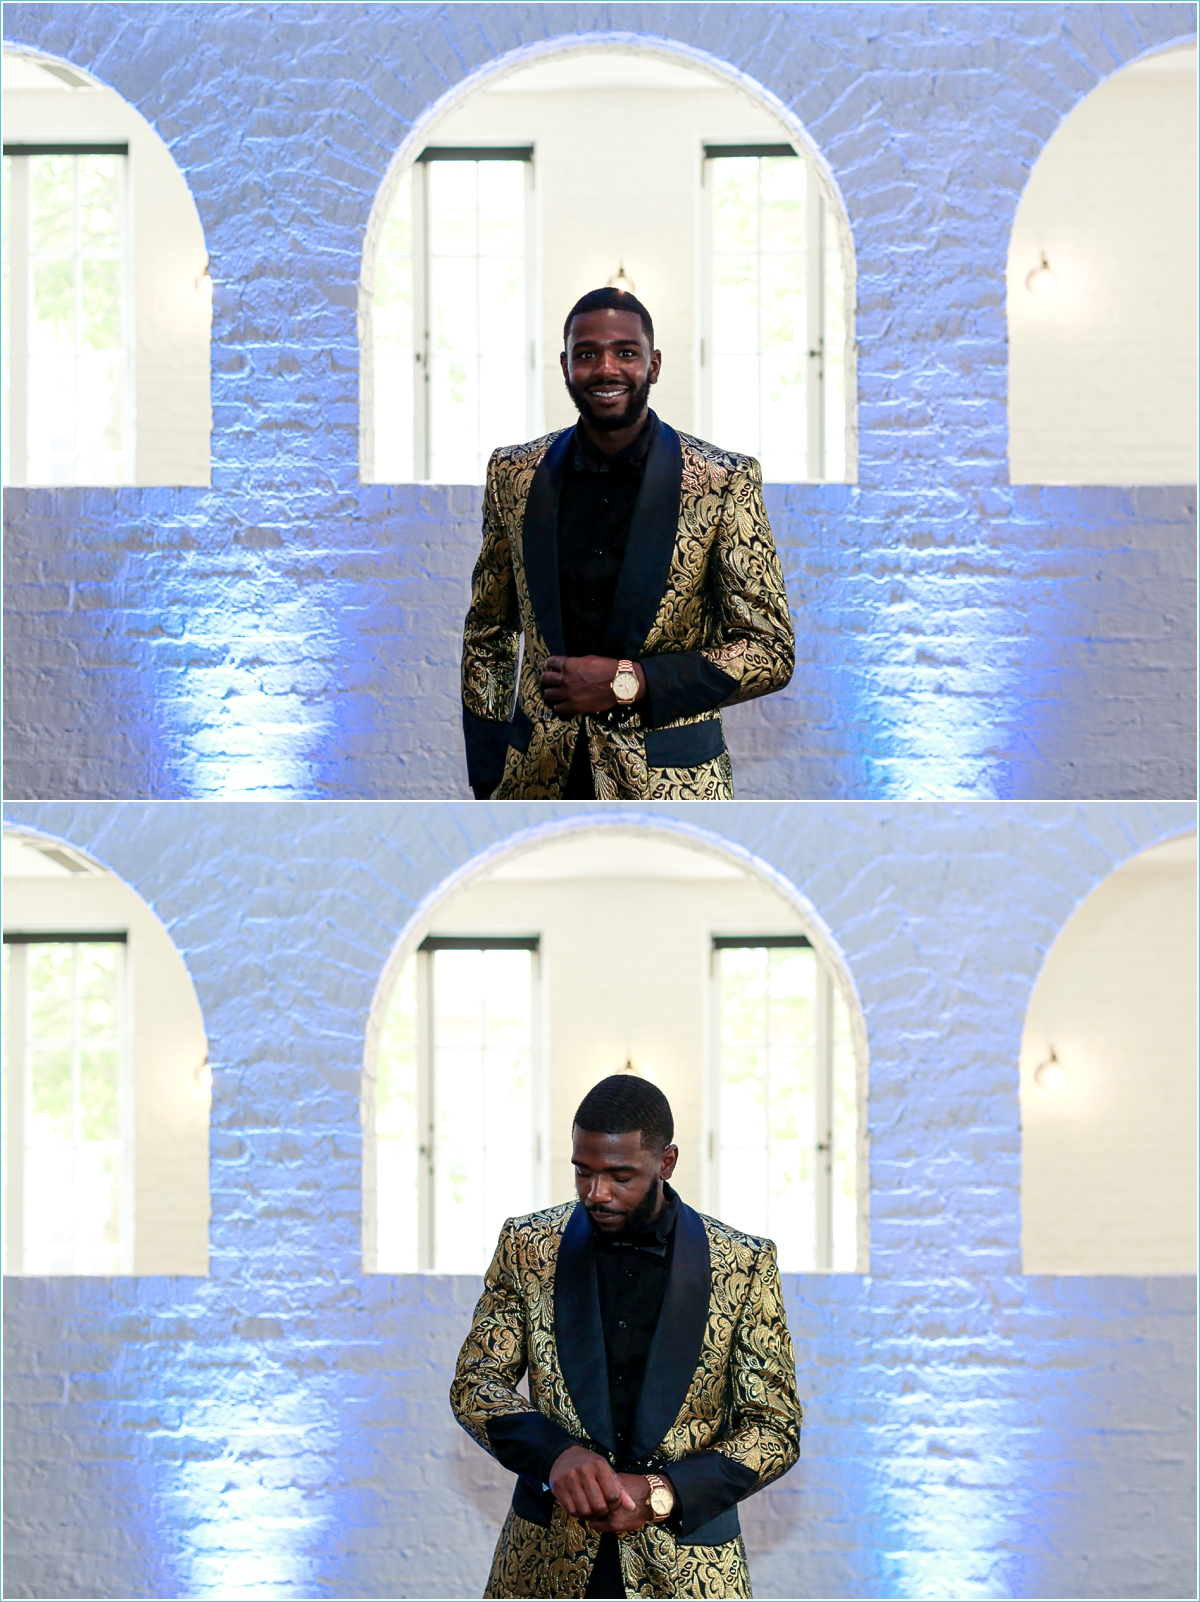 groom wearing unique gold tuxedo